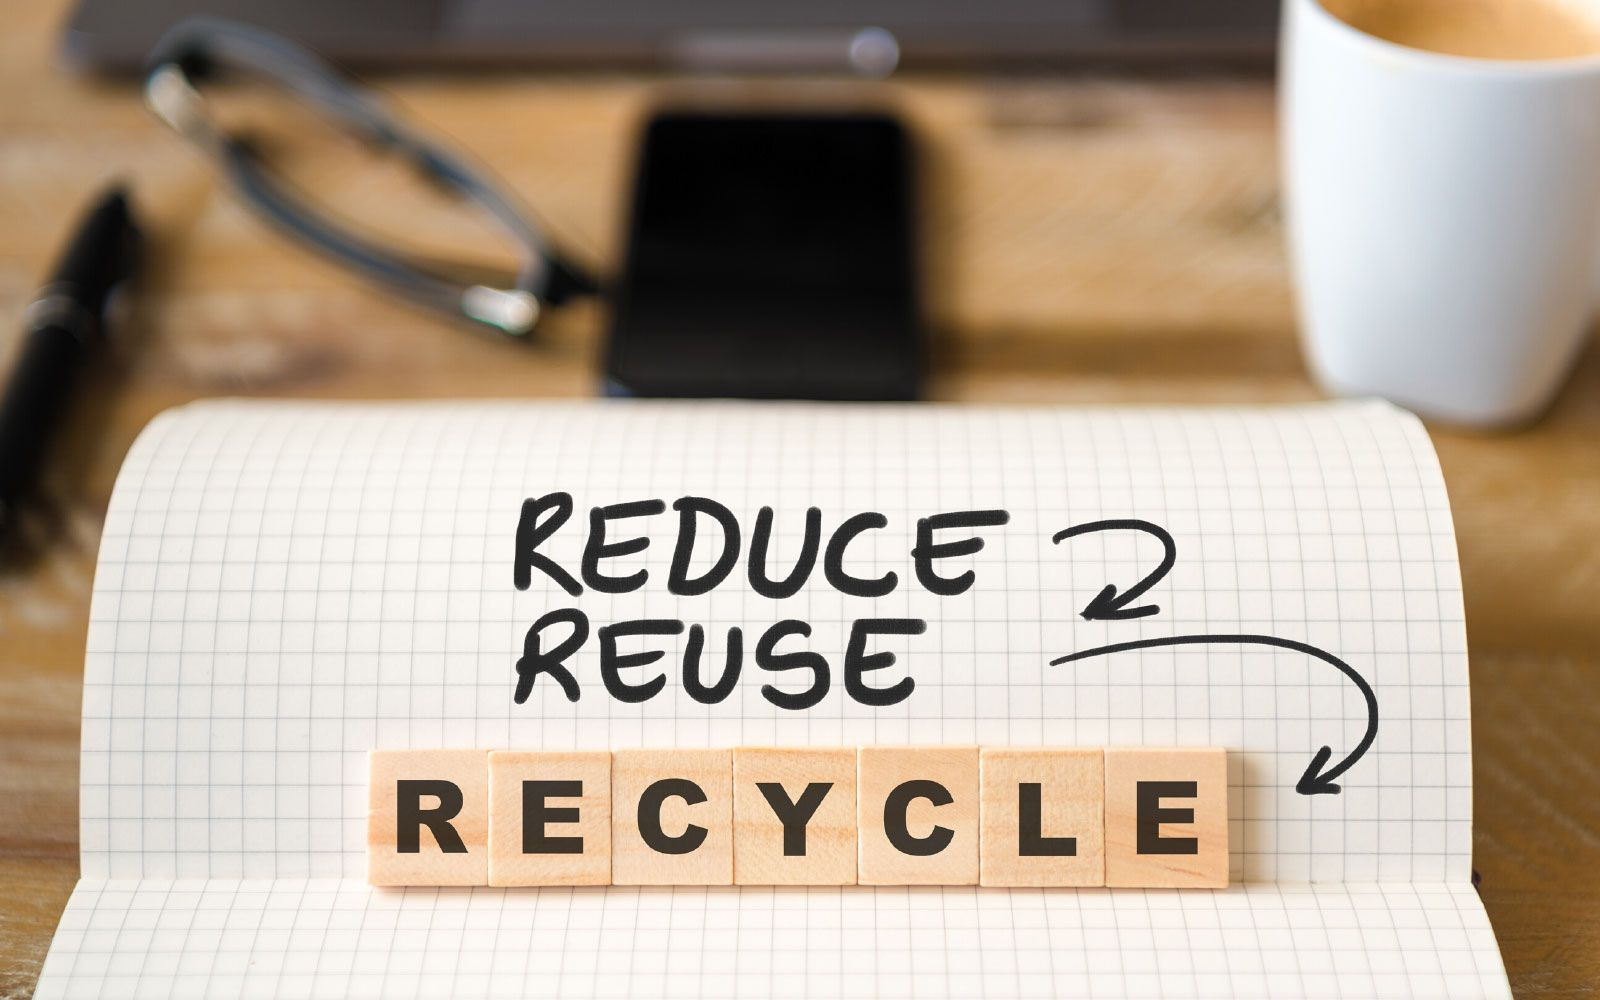 CBS Waste Management | Recycling Services in Bedford